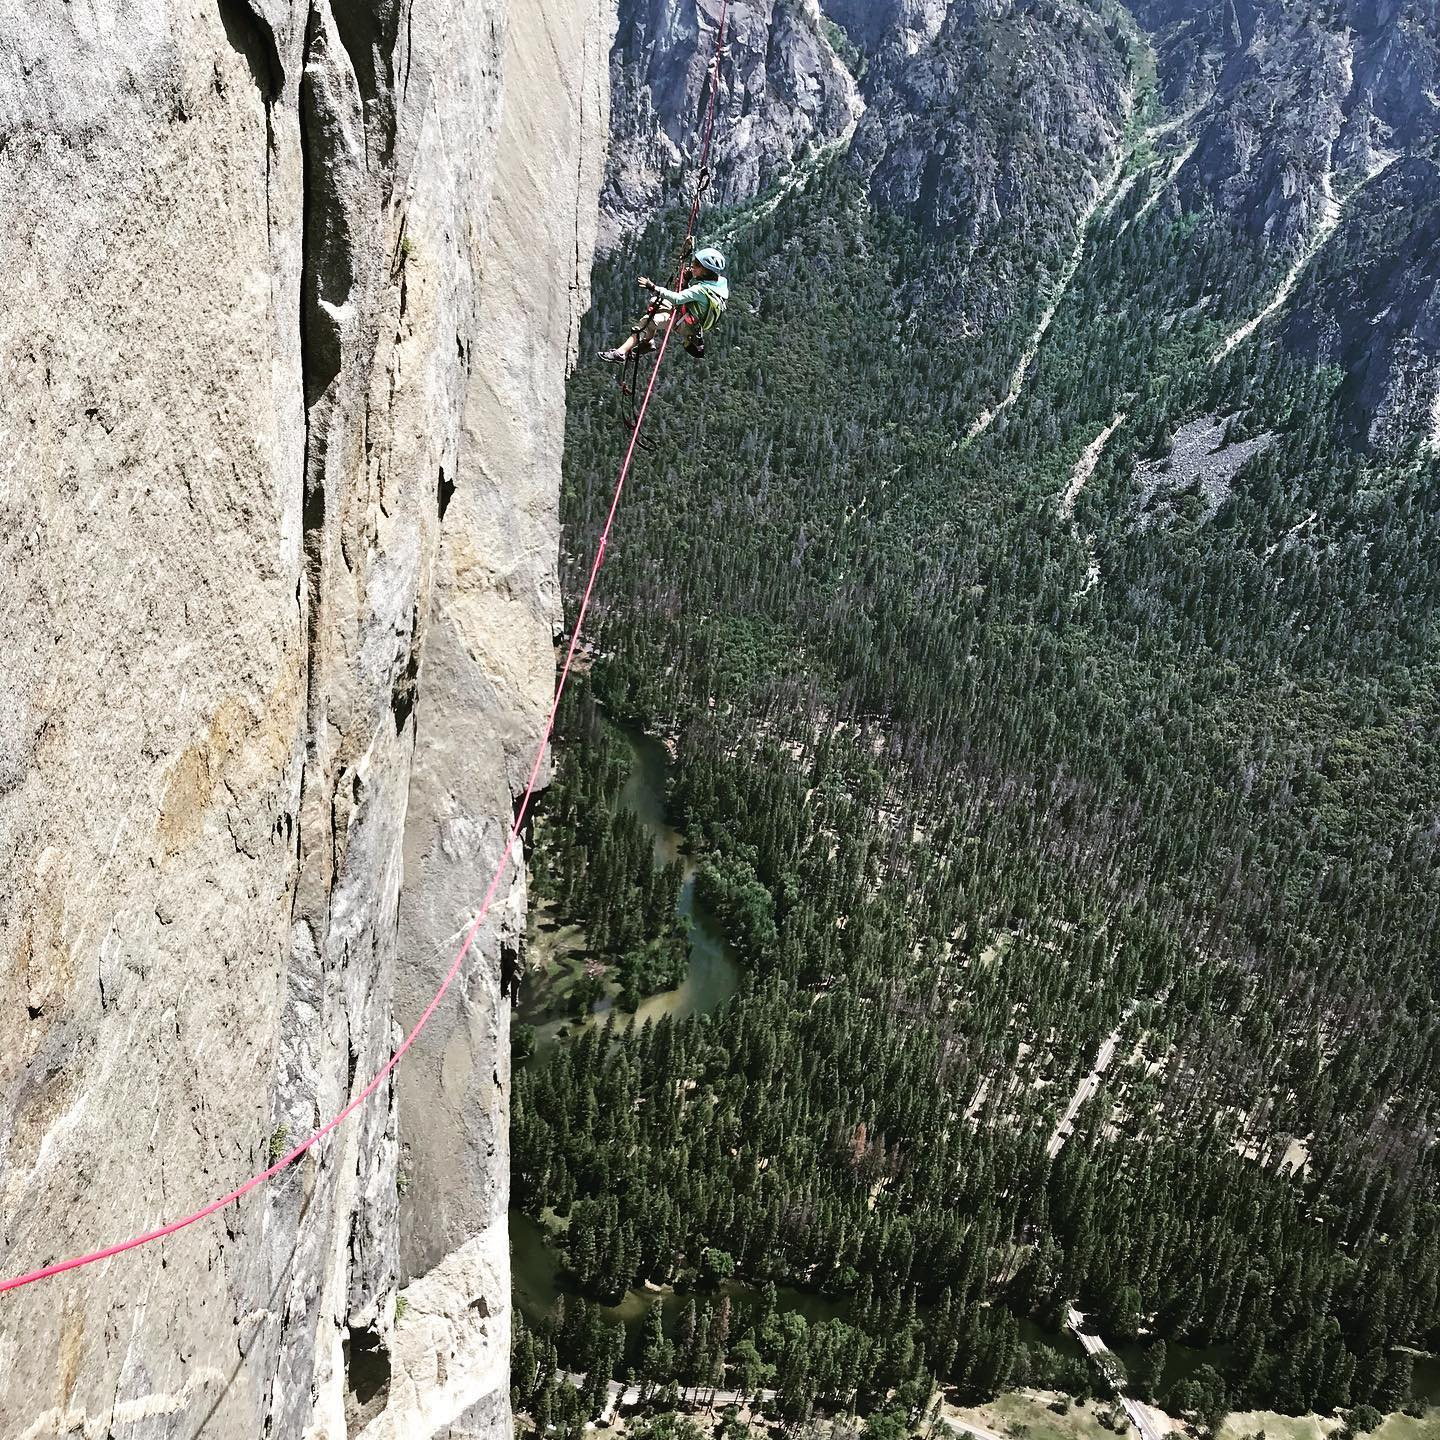 Selah jumaring on the Nose. Her dad estimates that she cleaned 80 percent of the pitches on the route, which freed up the two adults to haul the bag. [Photo] Schneiter family collection